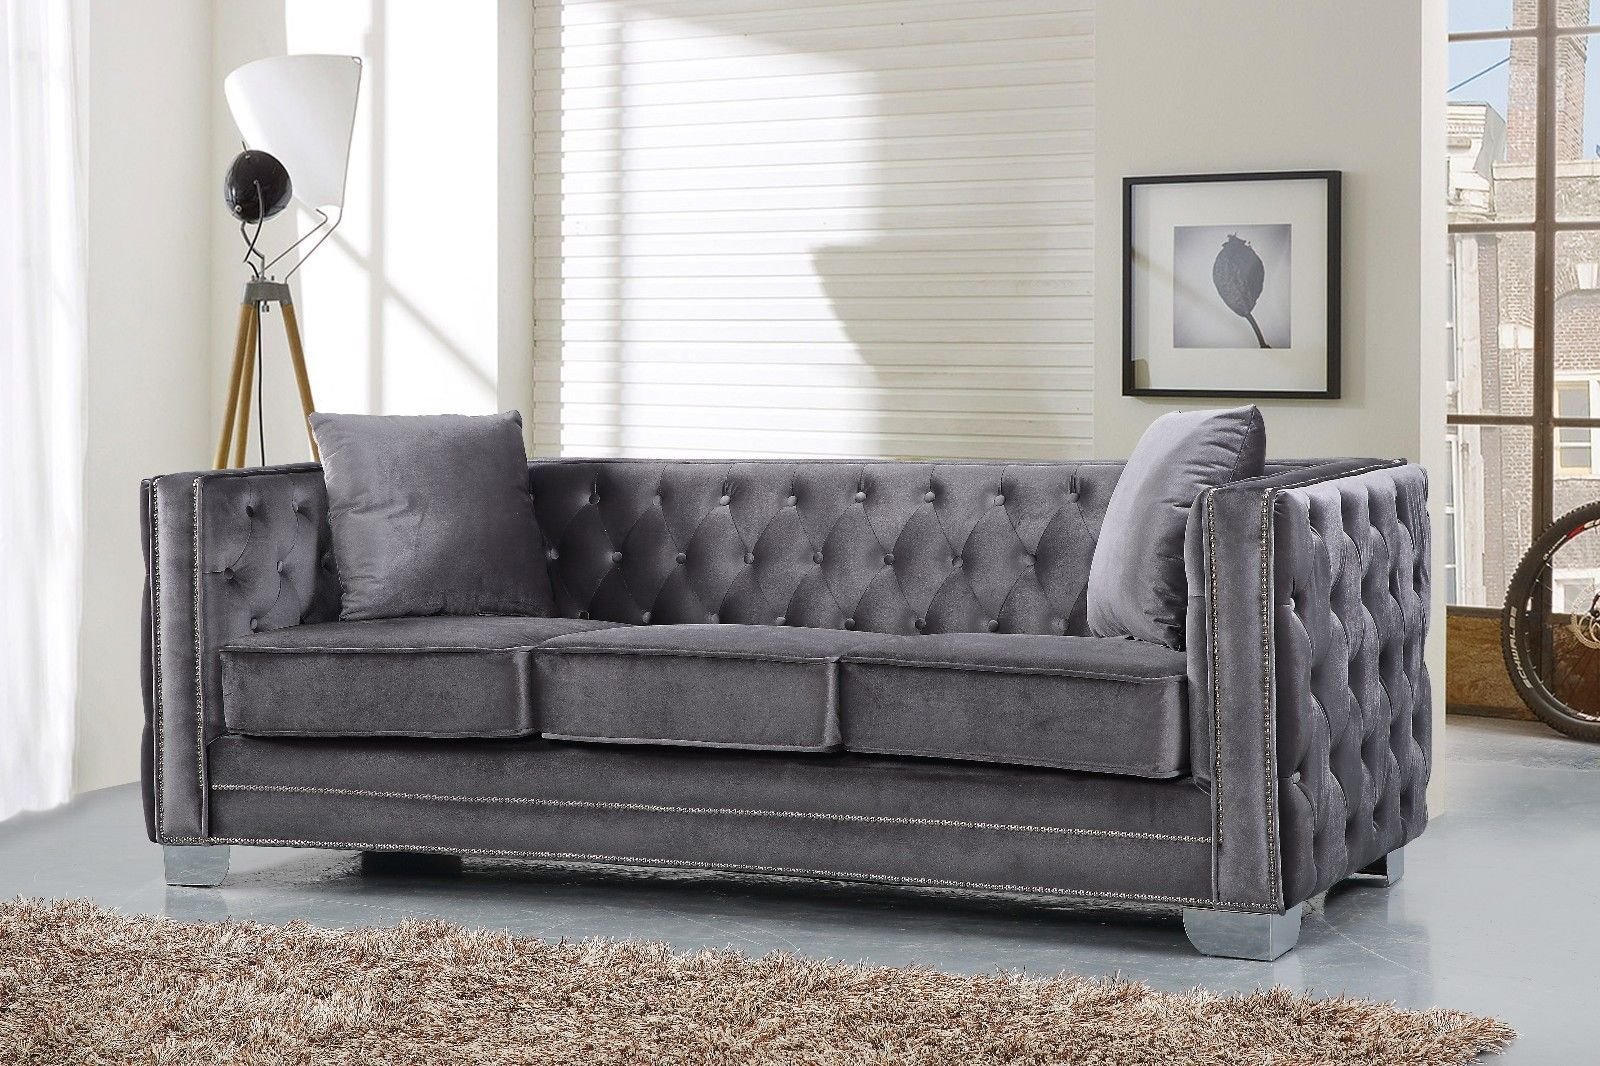 Meridian 648 Velvet Living Room Sofa Tufted Grey Contemporary Style